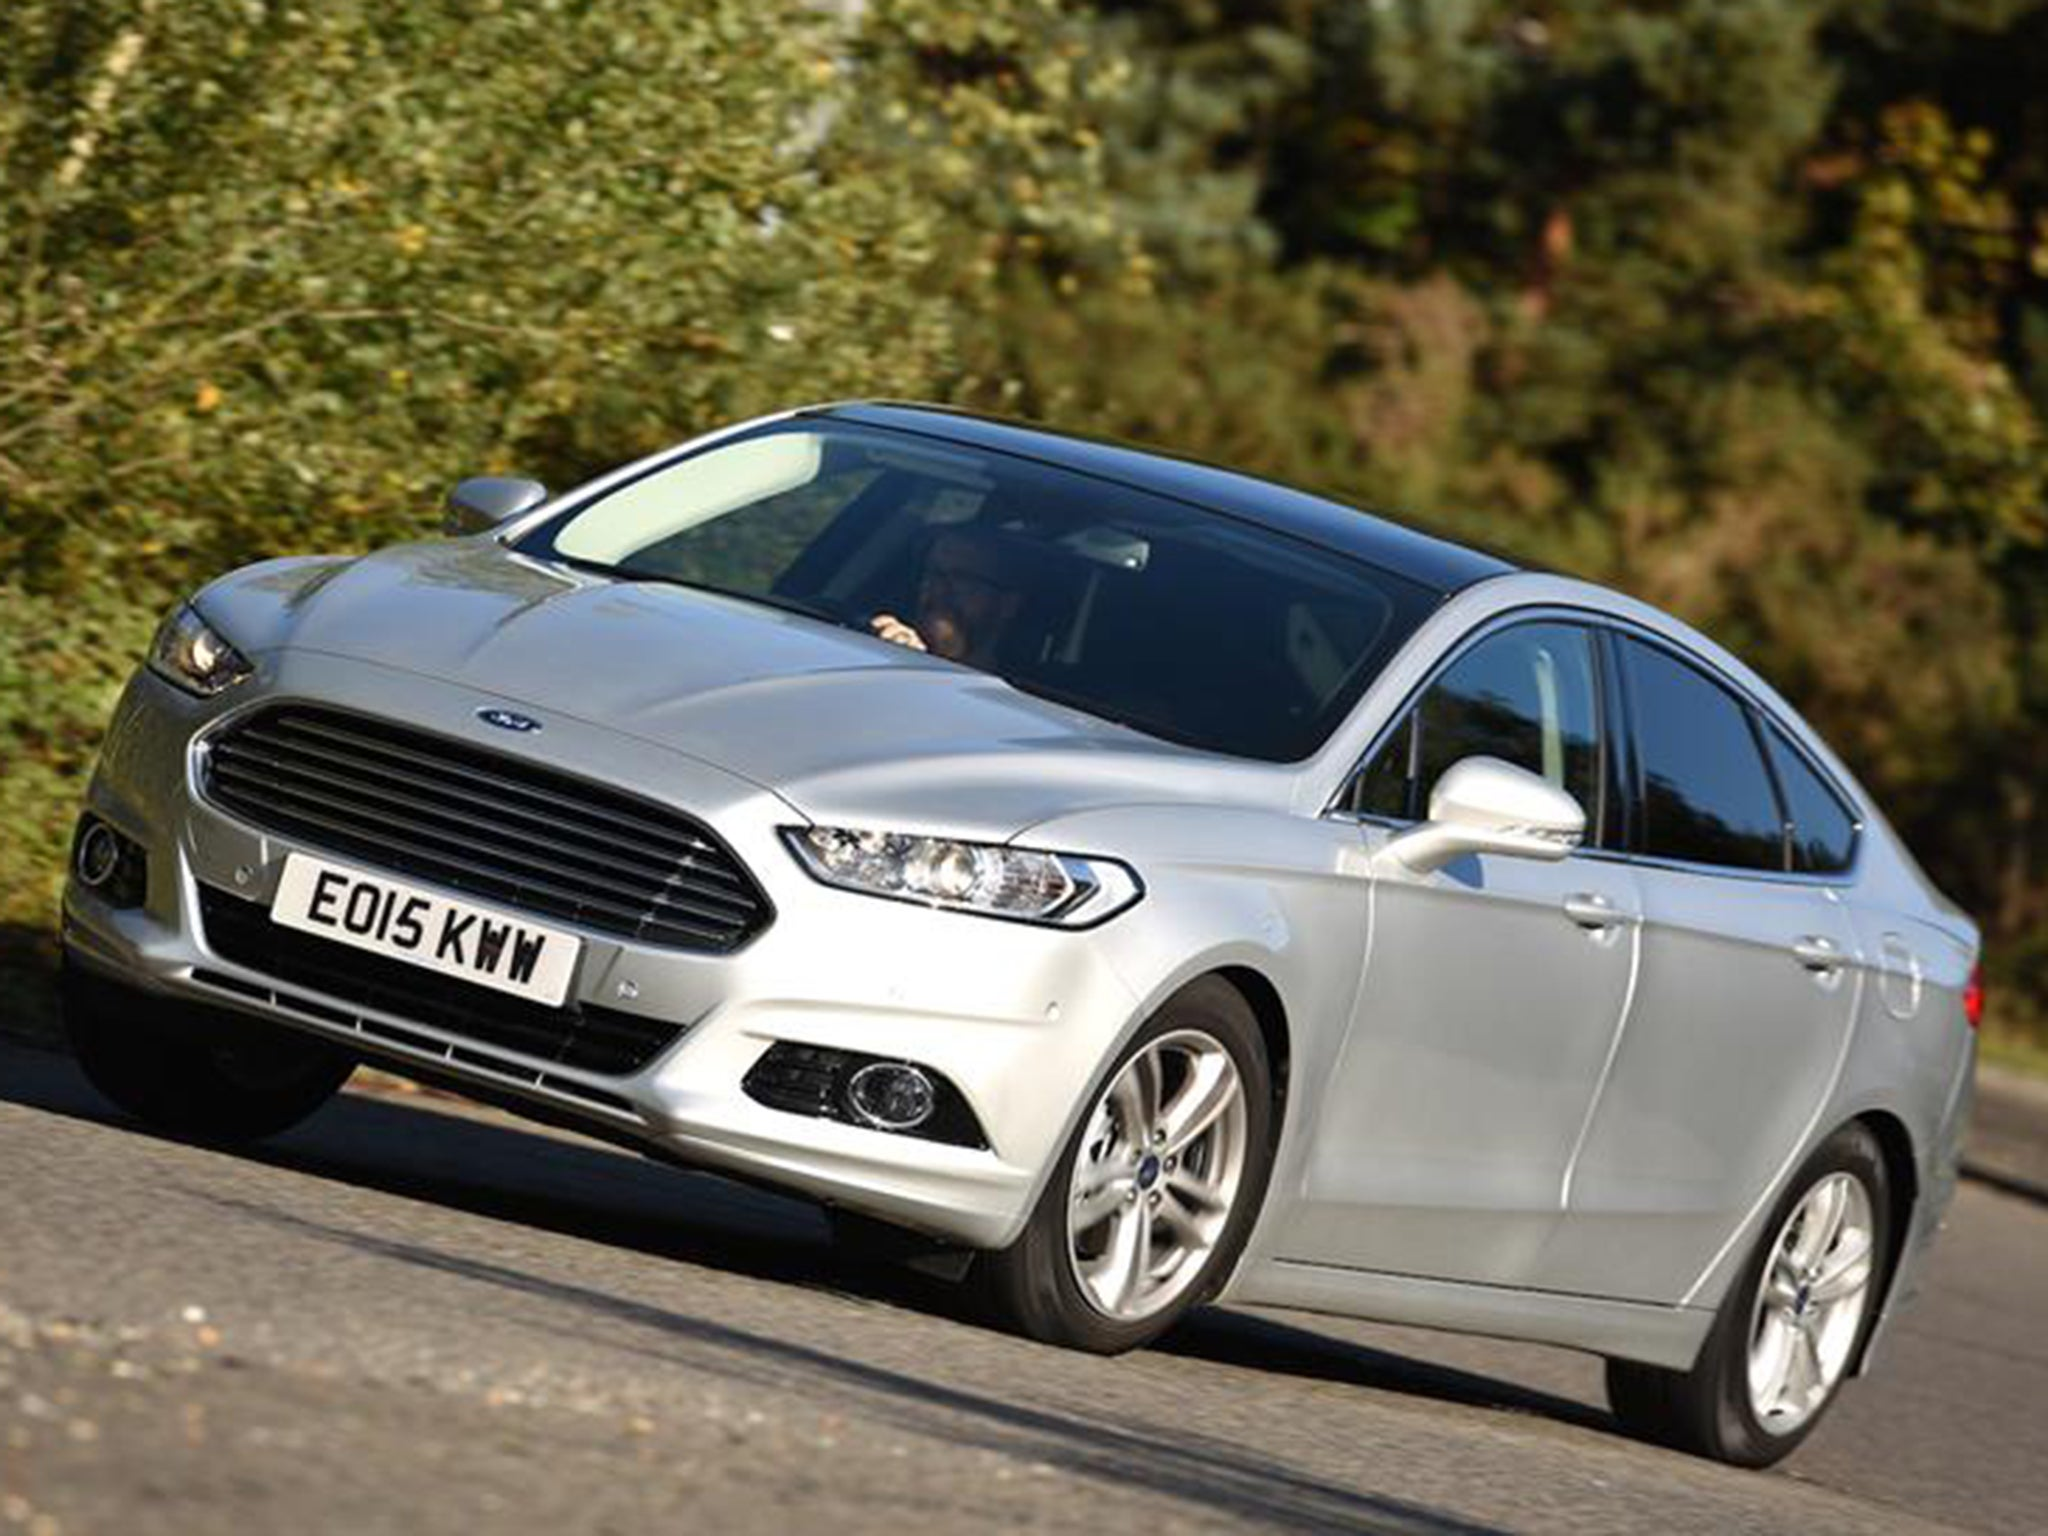 Ford mondeo 2 0 tdci 150 awd car review an all wheel drive mondeo whatever next the independent